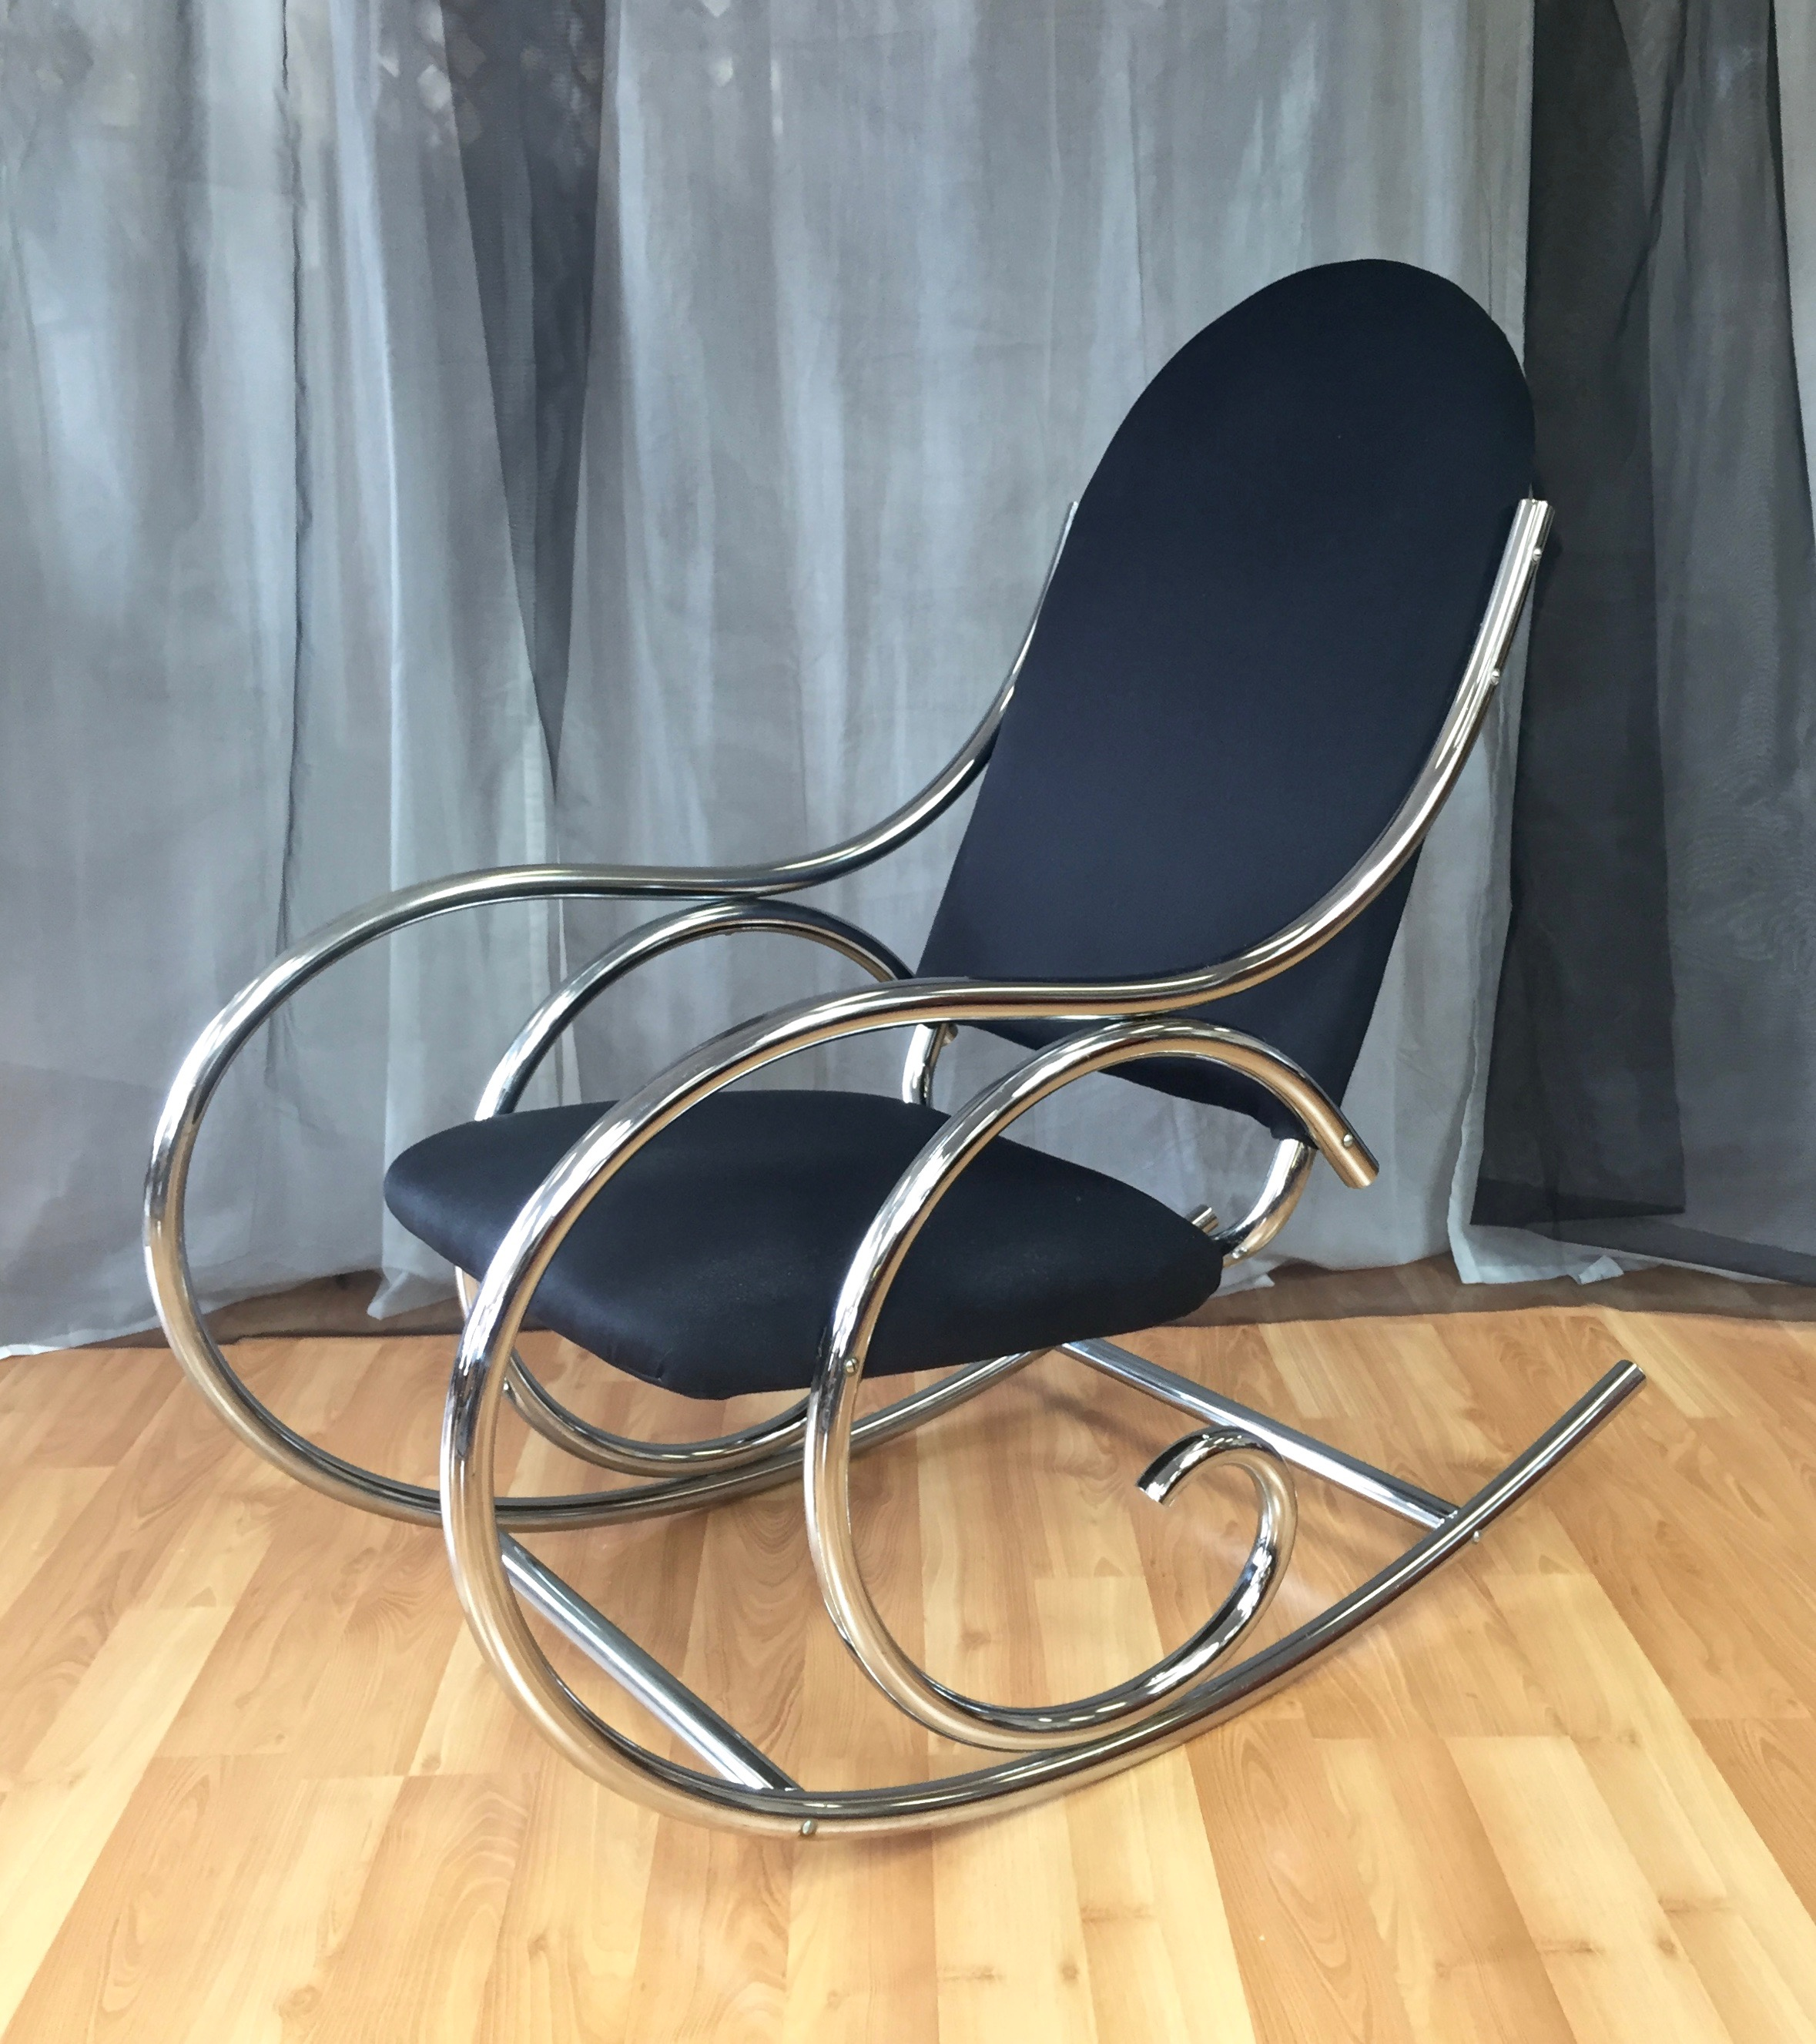 how to make a rocking chair not rock high for twins curvaceous upholstered chrome in the style